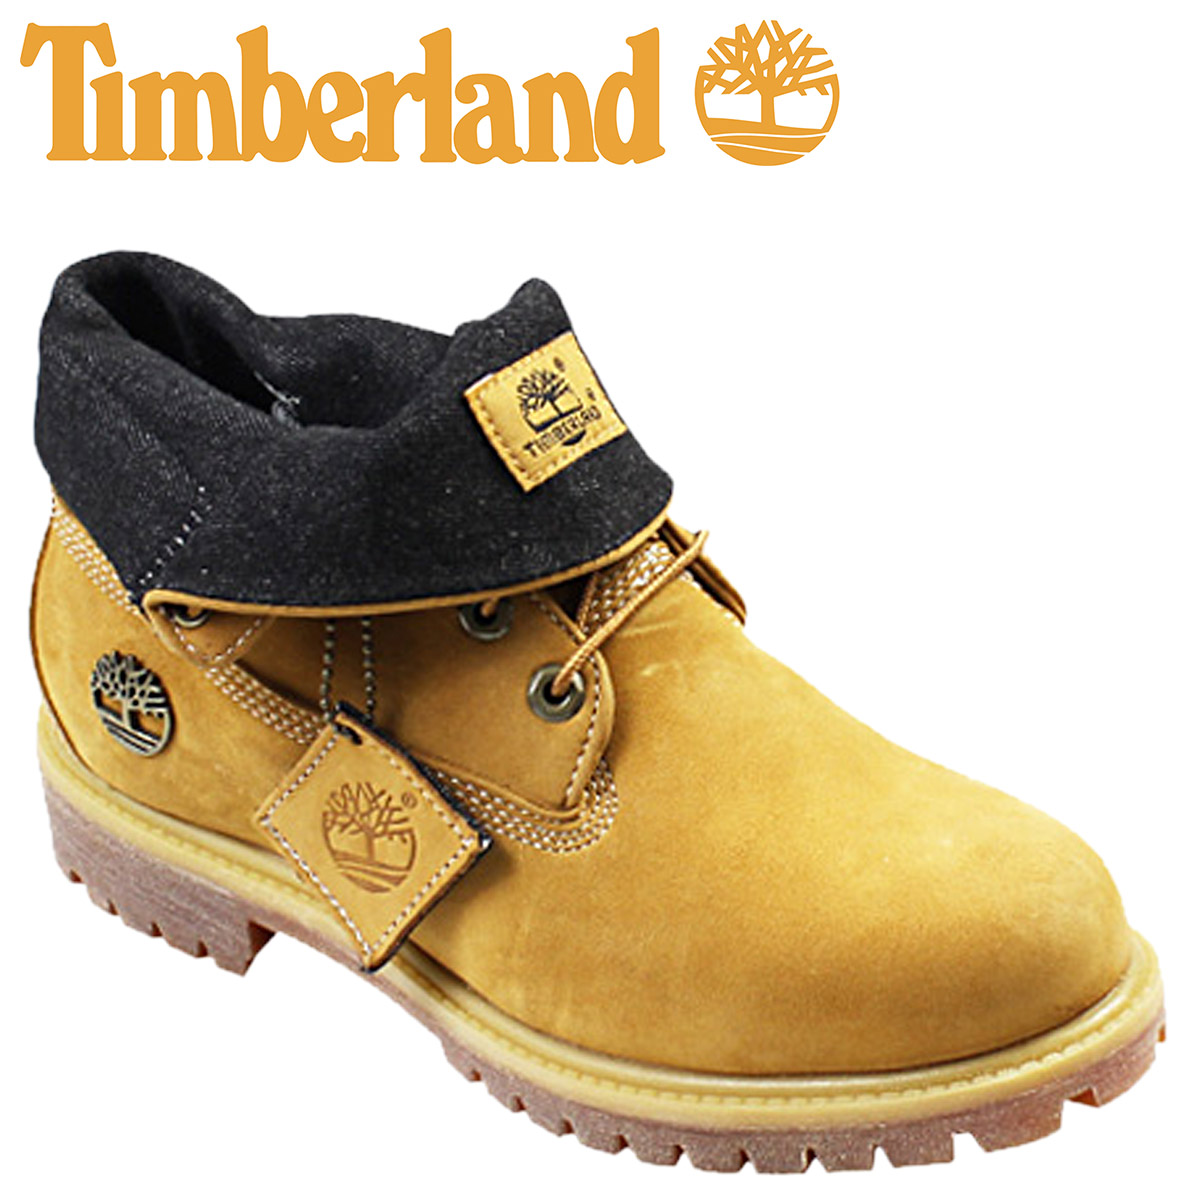 d76a522a98d [SOLD OUT] Timberland Timberland roll top wheat ROLL TOP nubuck fabric  6420R men